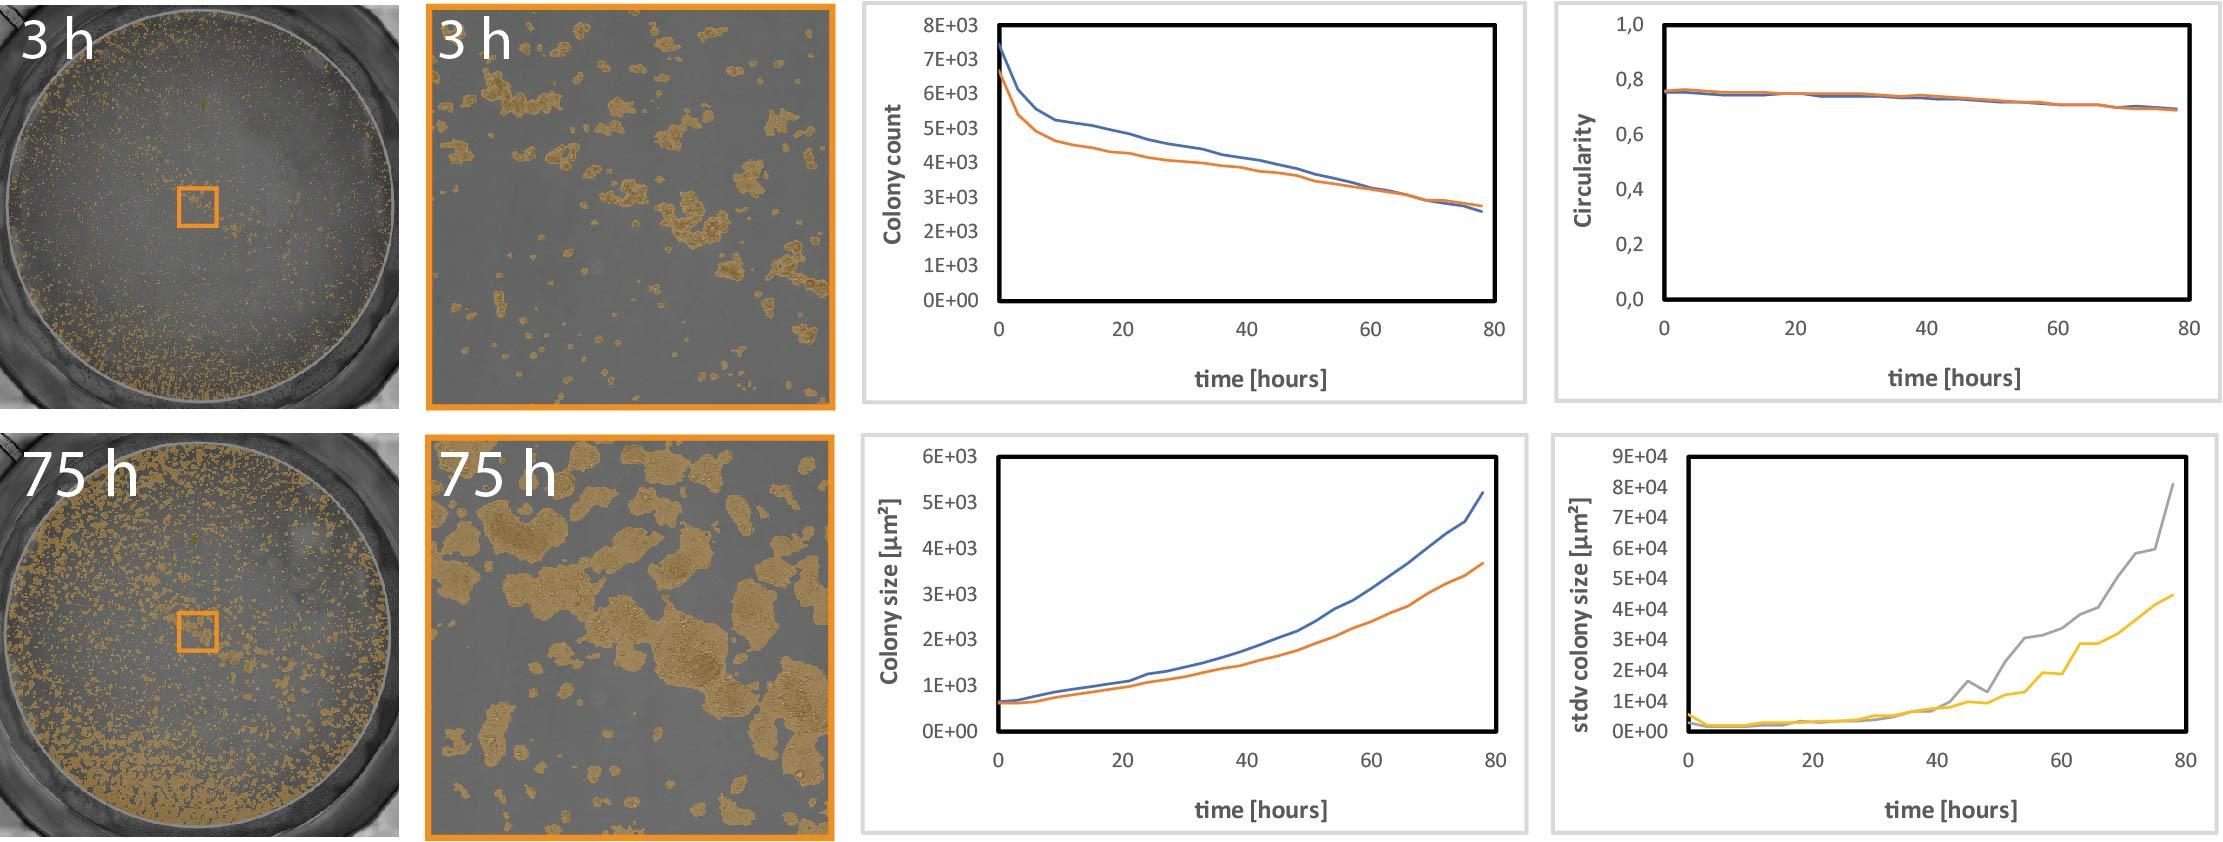 Automated colony detection using the CytoSMART Omni. Colony count, size and circularity were measured through the duration of the assay and a shown in the graphs.